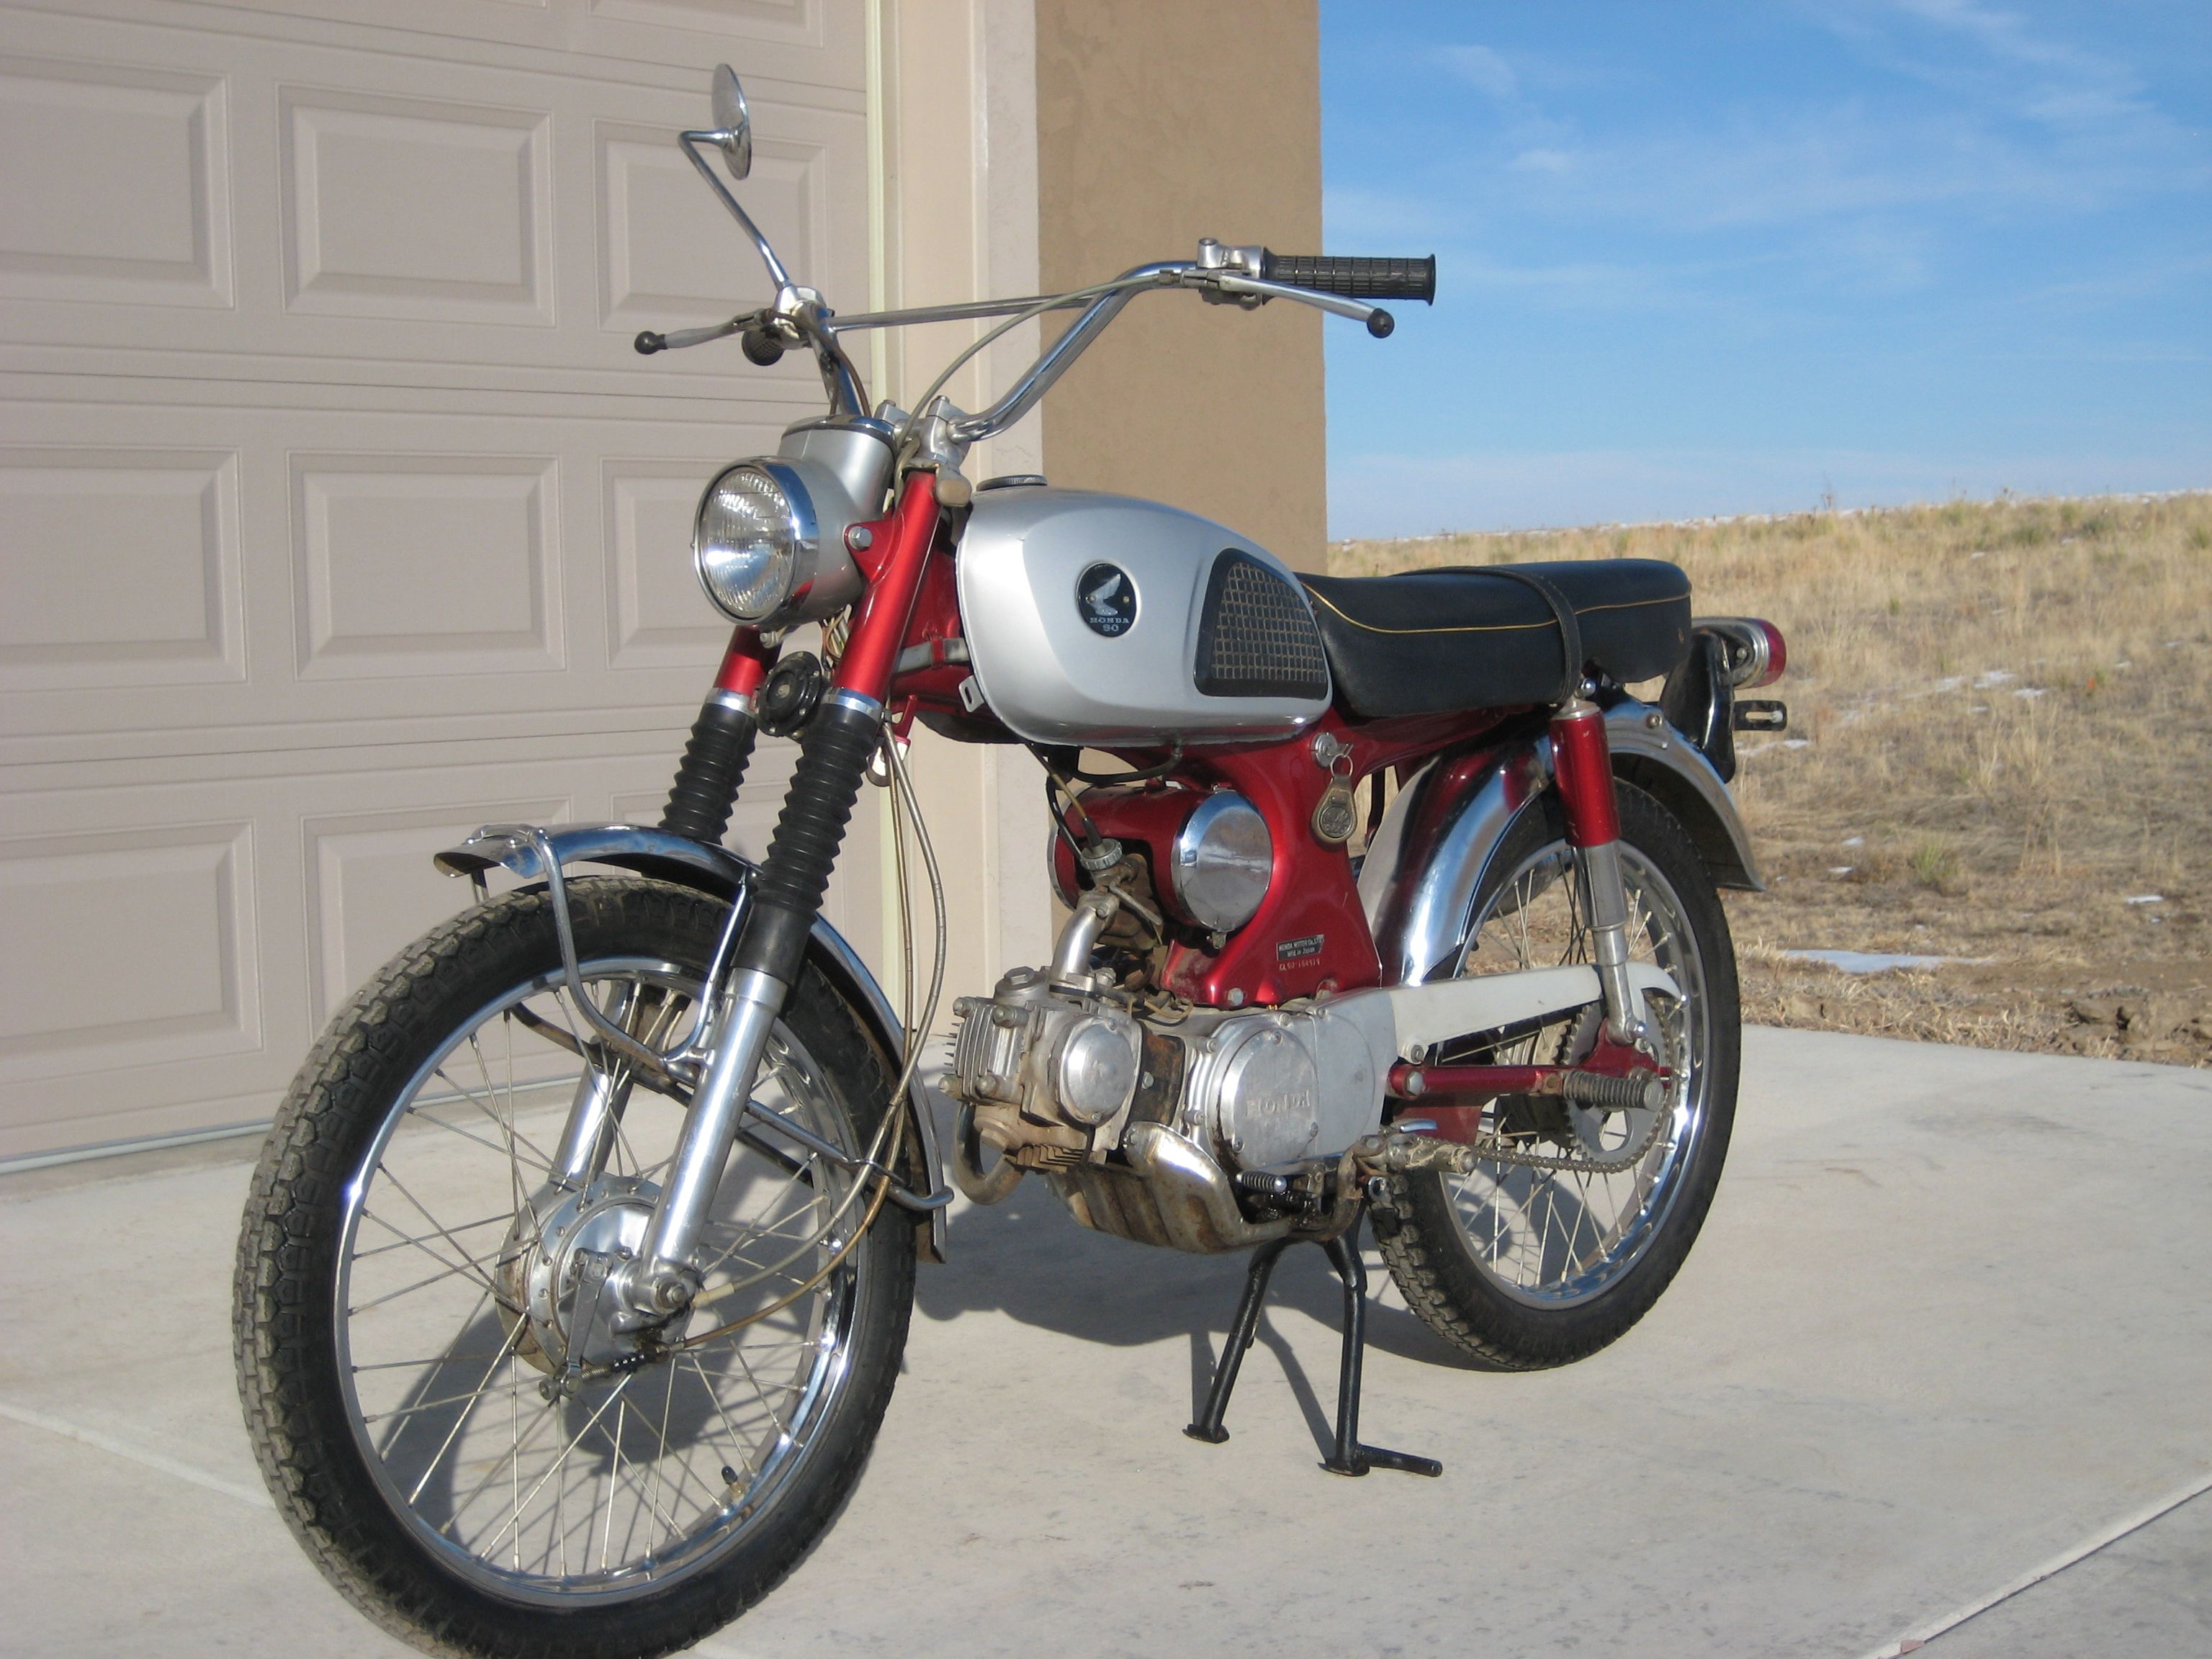 72 Yamaha 100 Wiring Diagram Auto Electrical 1978 International 1700 Loadstar Honda Xl250 Diagrams Trail 90